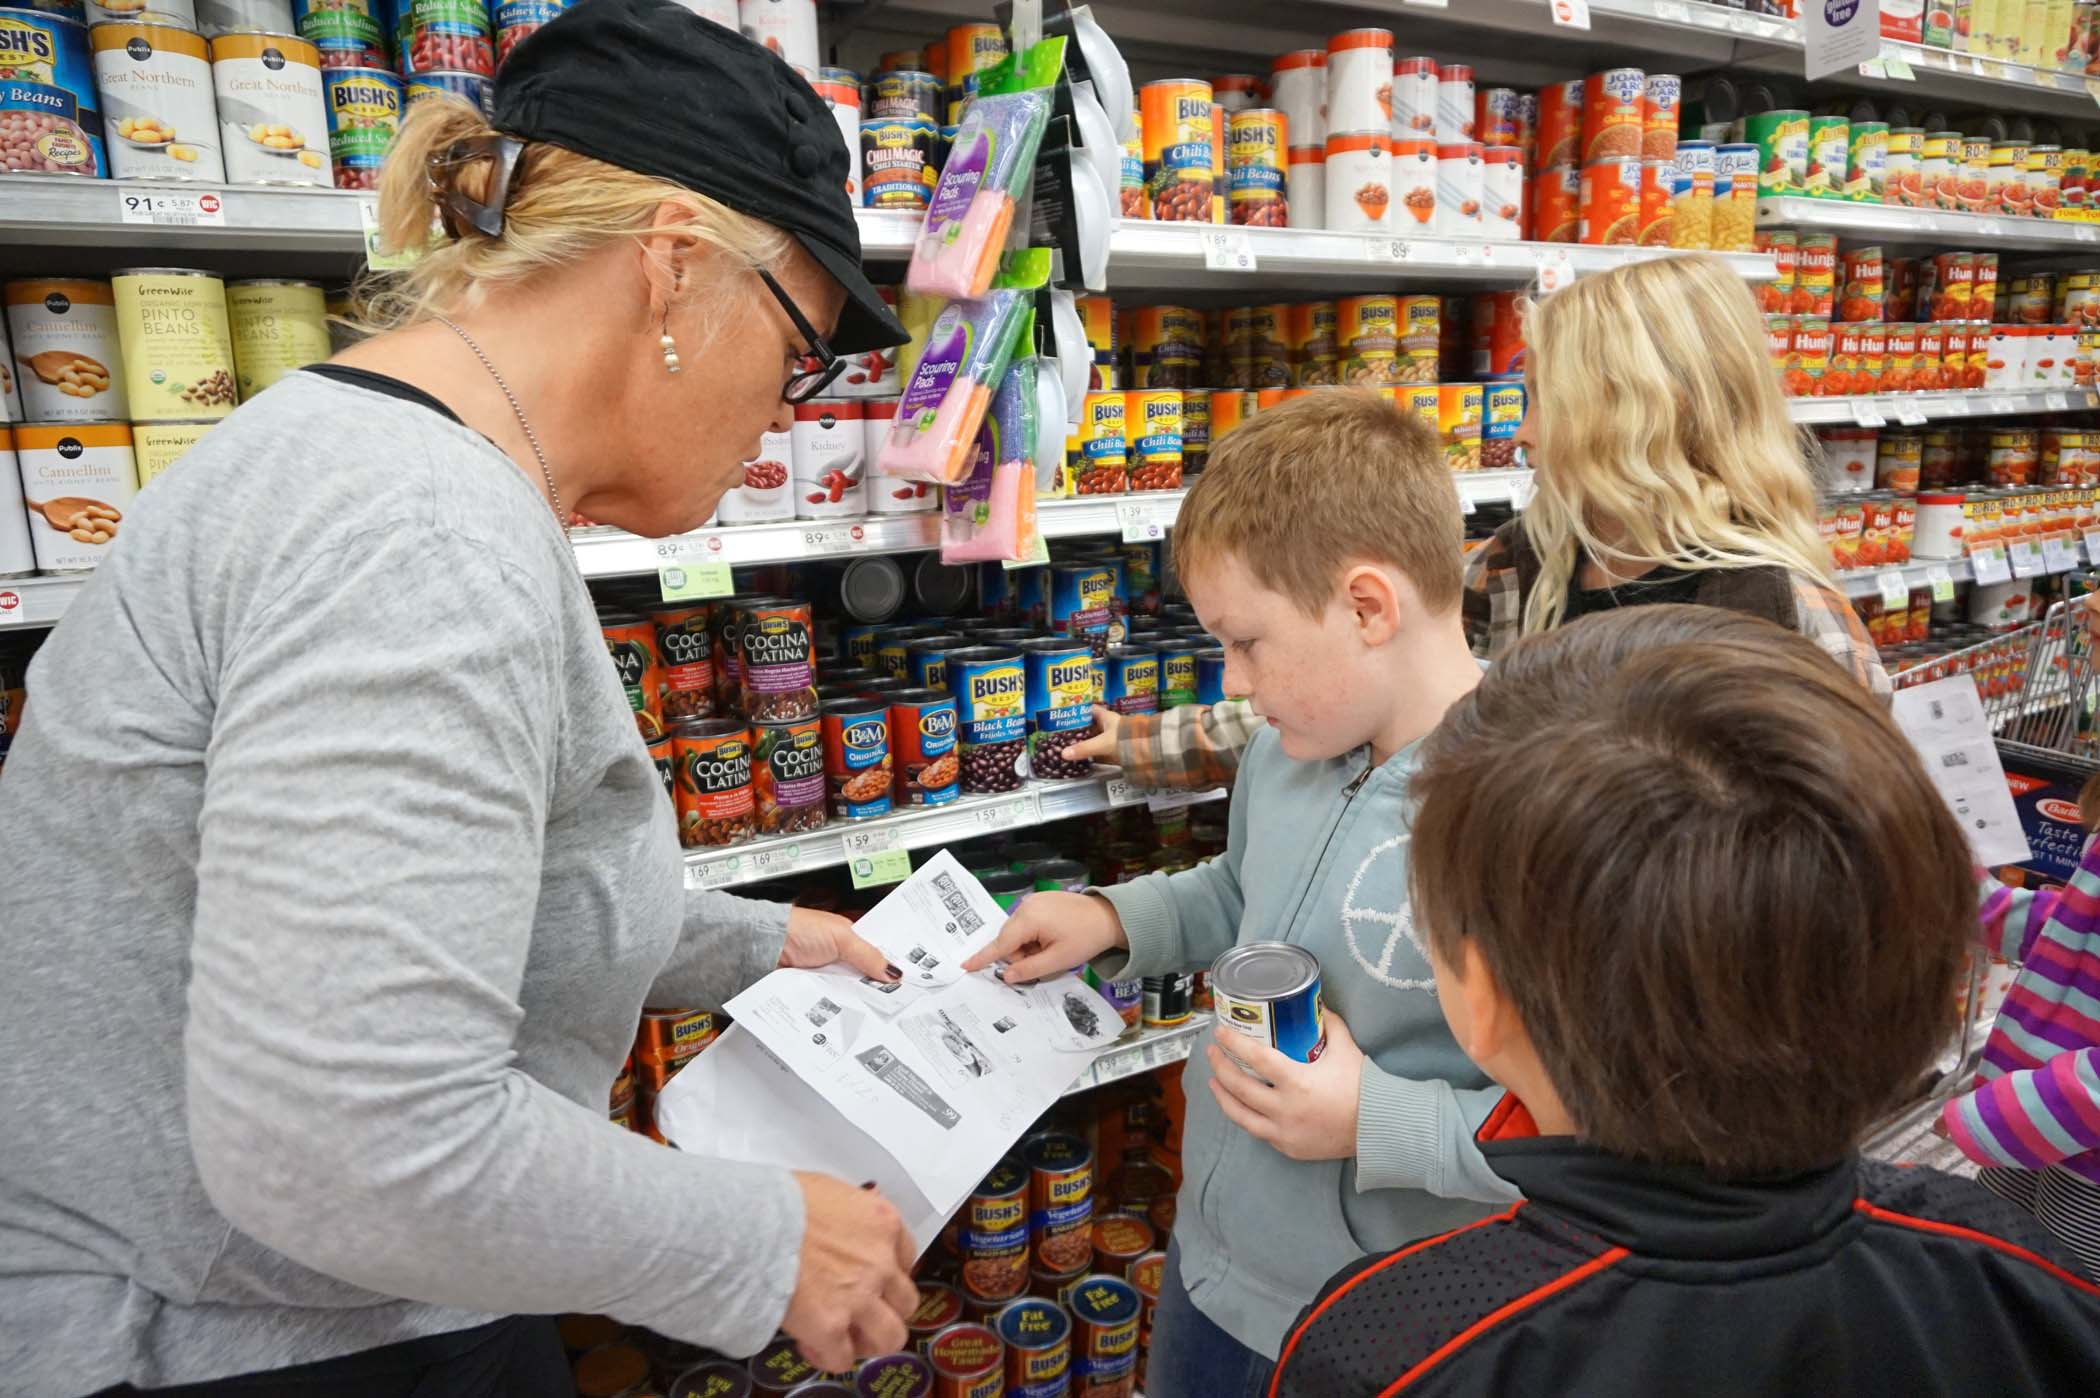 A parent chaperone and students look over a meal plan they created as they shop for food to donate to the USO Mayport Center in the school's 14th annual USO food drive.